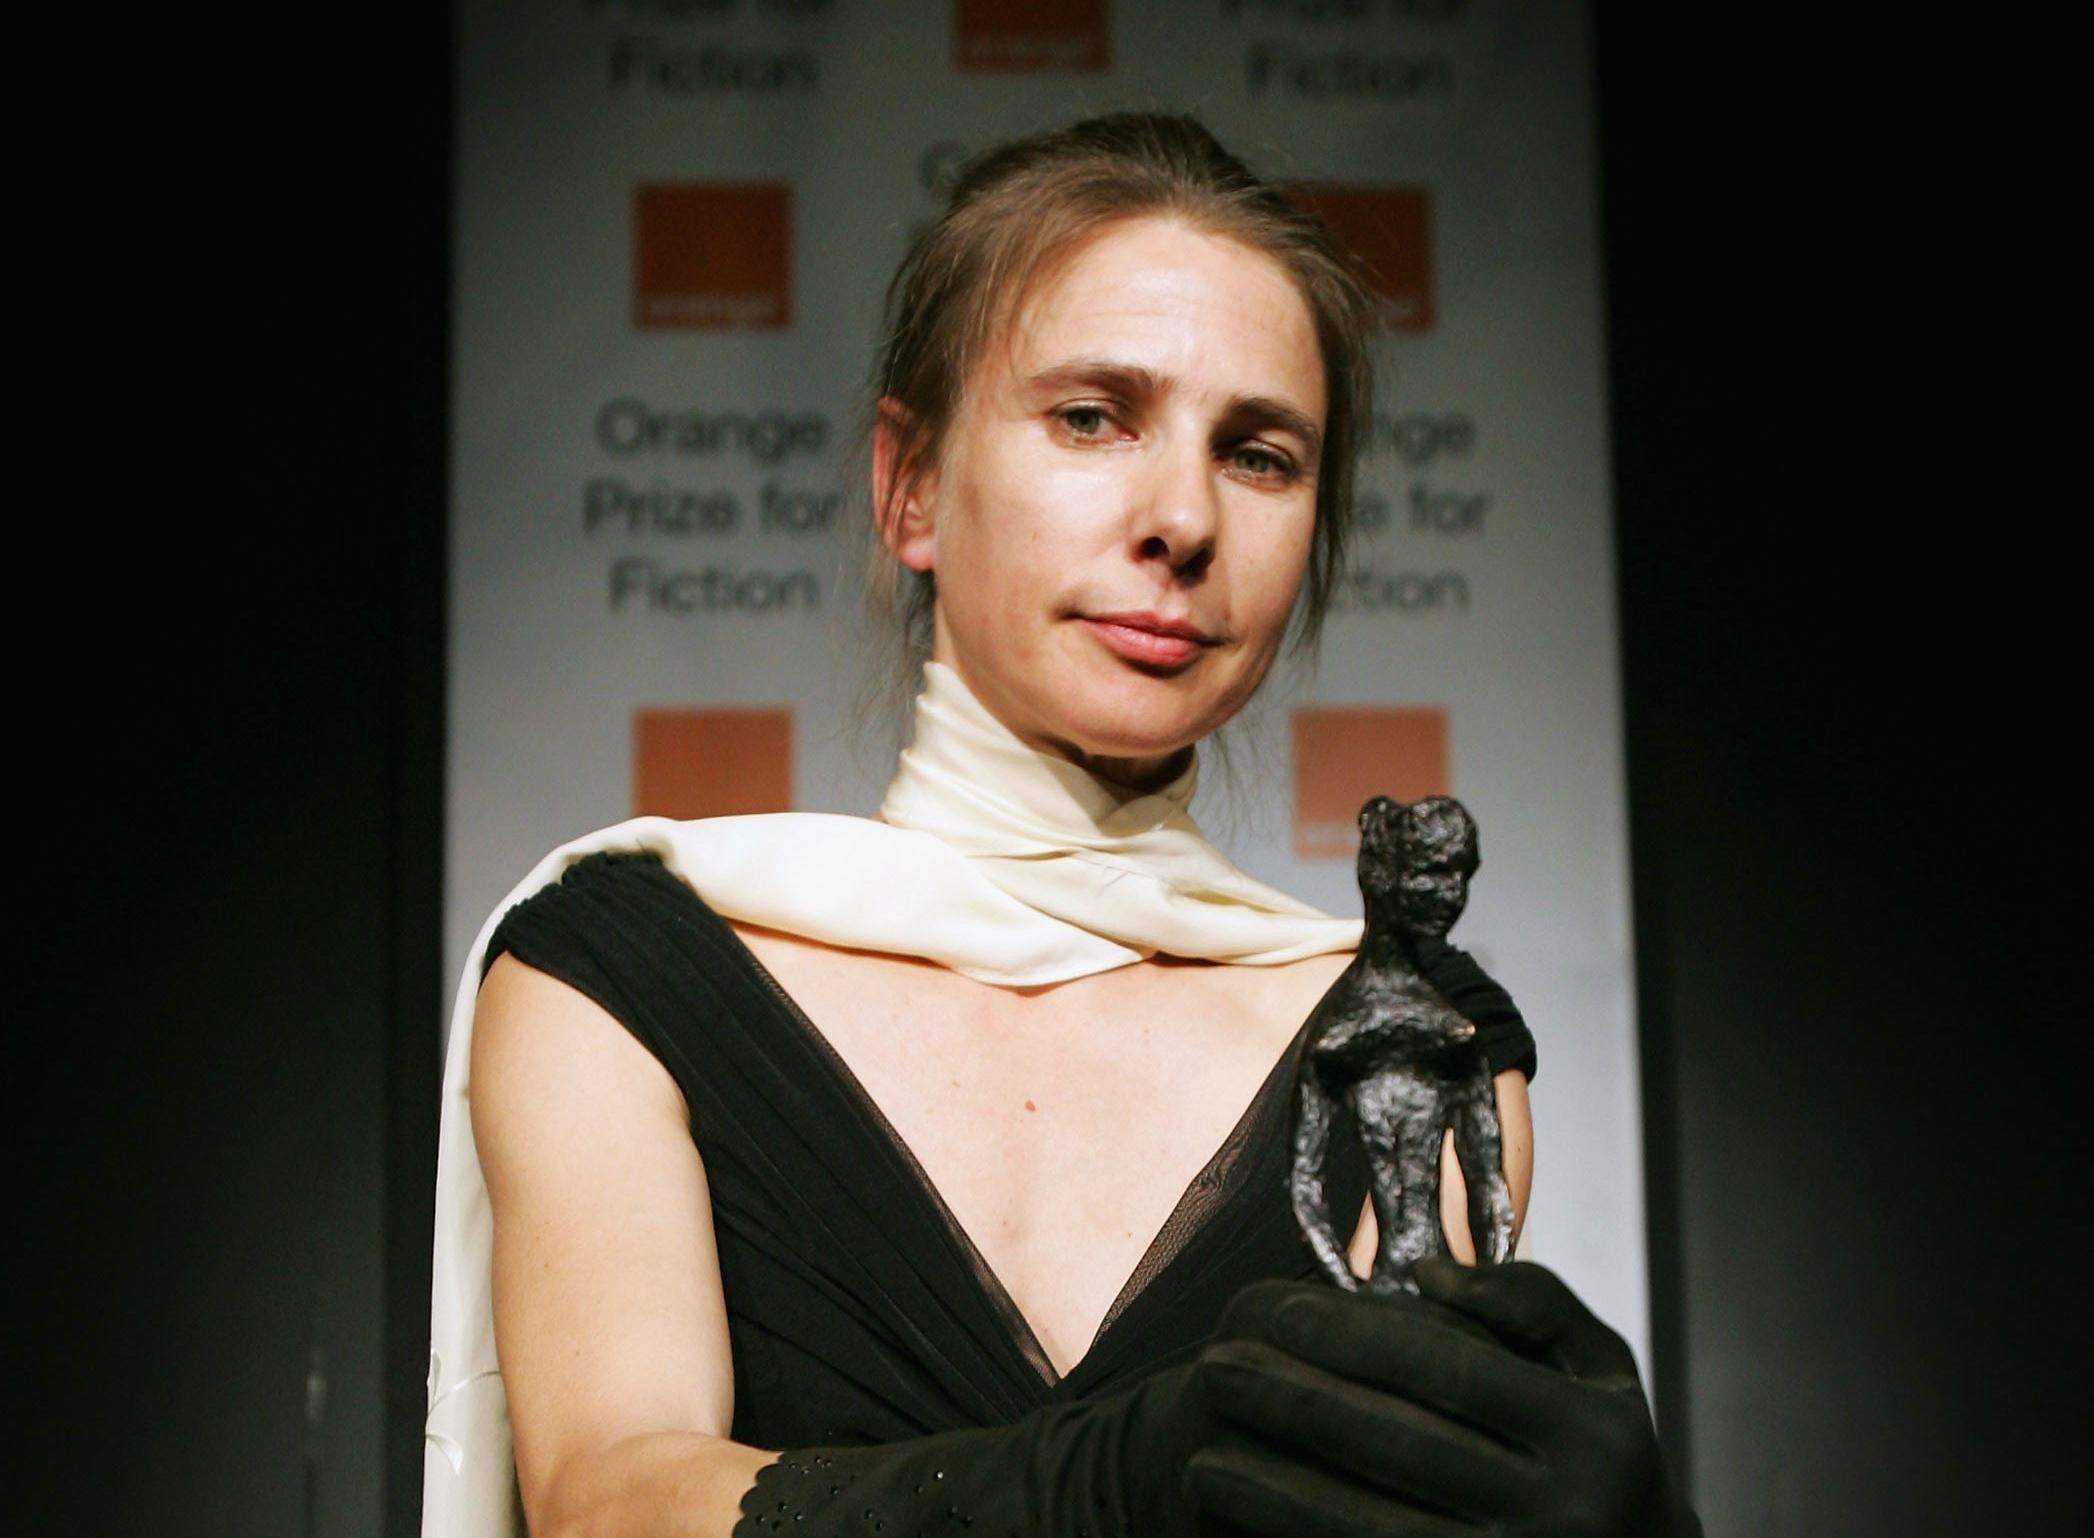 Lionel Shriver dissects 'cultural appropriation': Speech in full